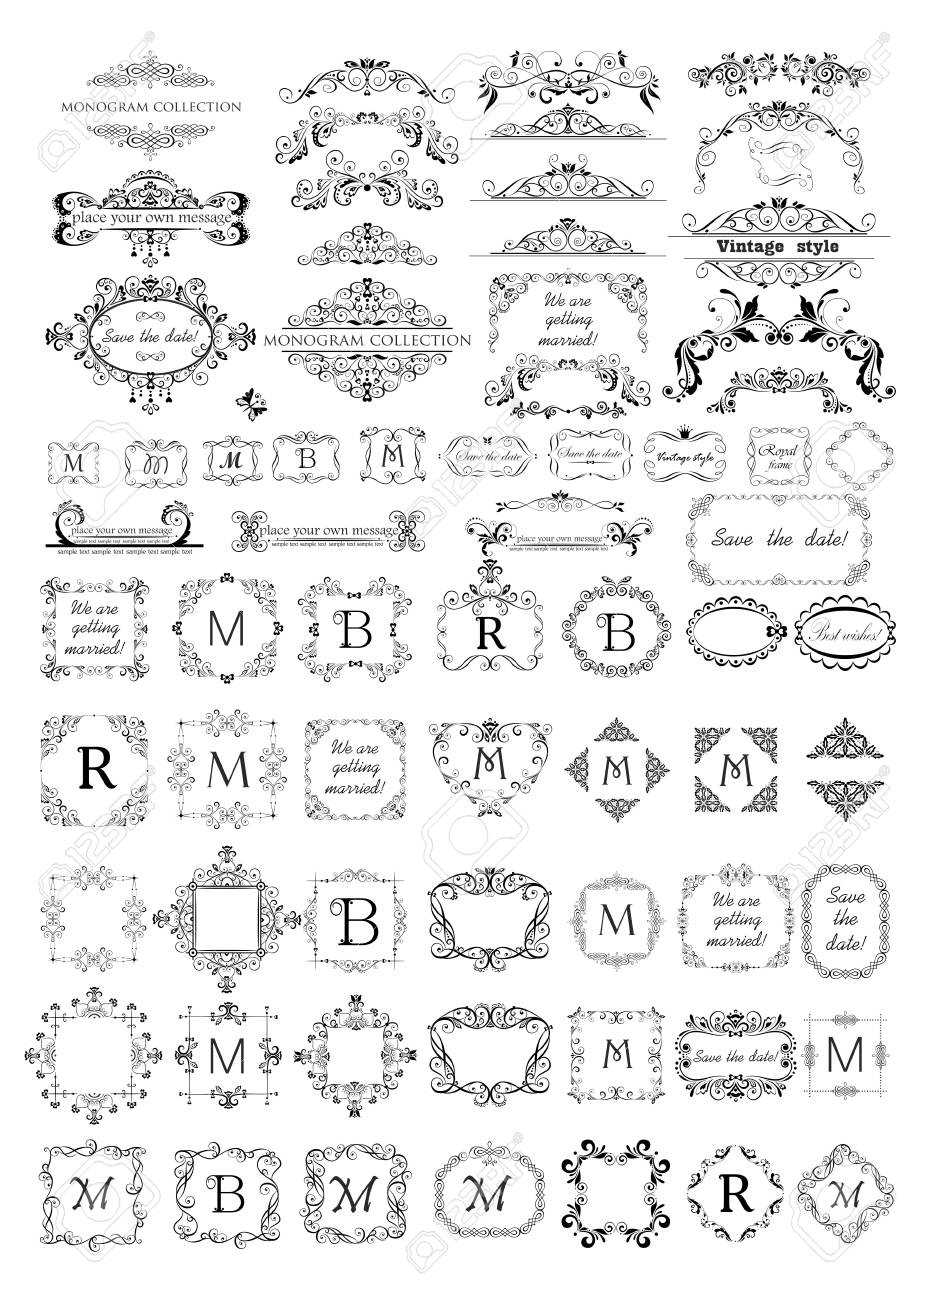 Collection Of Beautiful Frames Vignettes And Headers For Monogram Royalty Free Cliparts Vectors And Stock Illustration Image 102795558